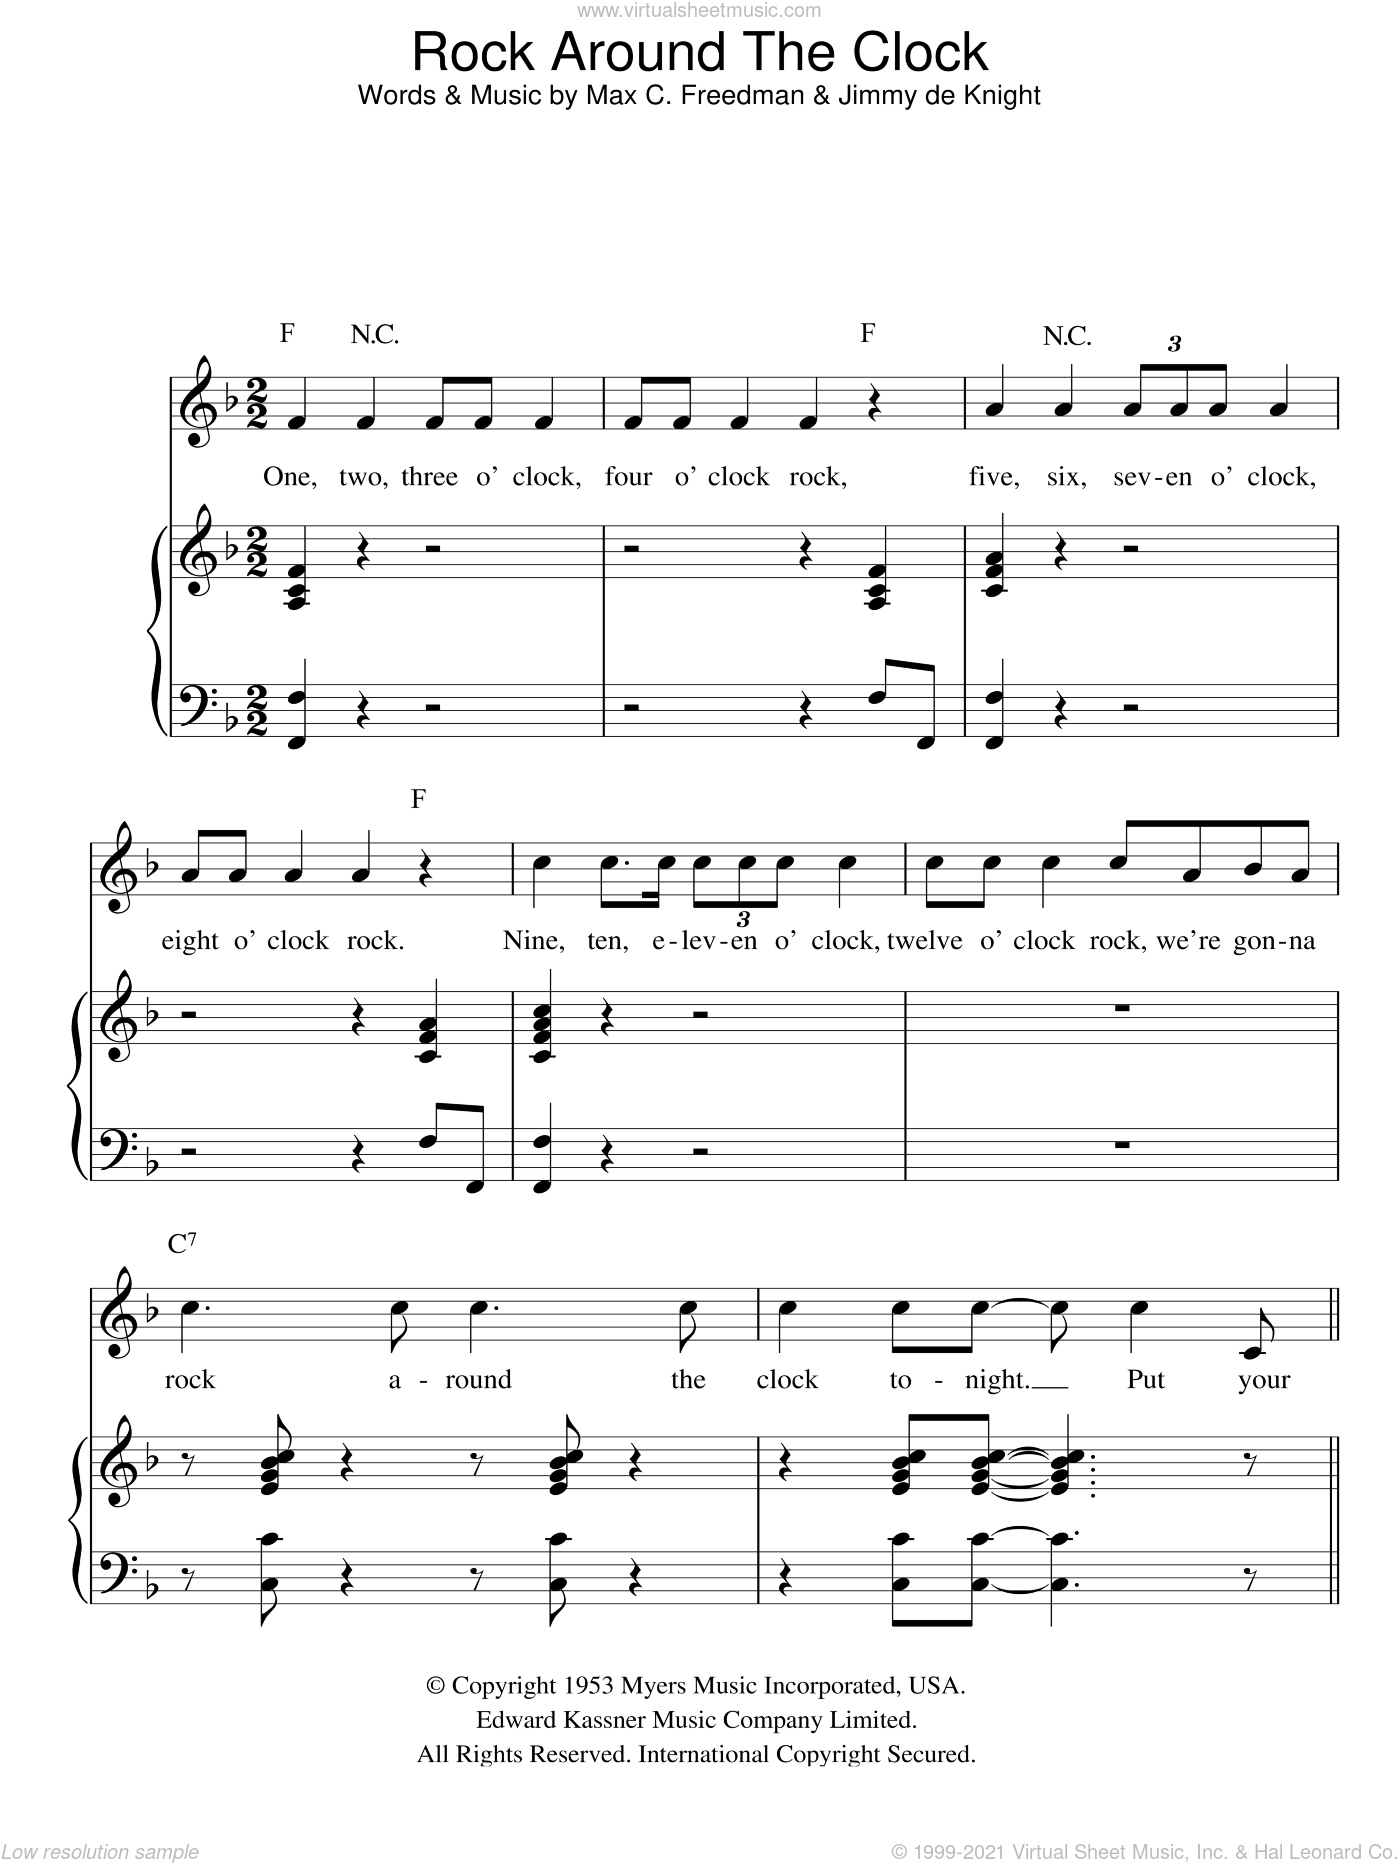 Rock Around The Clock sheet music for voice, piano or guitar by Bill Haley. Score Image Preview.